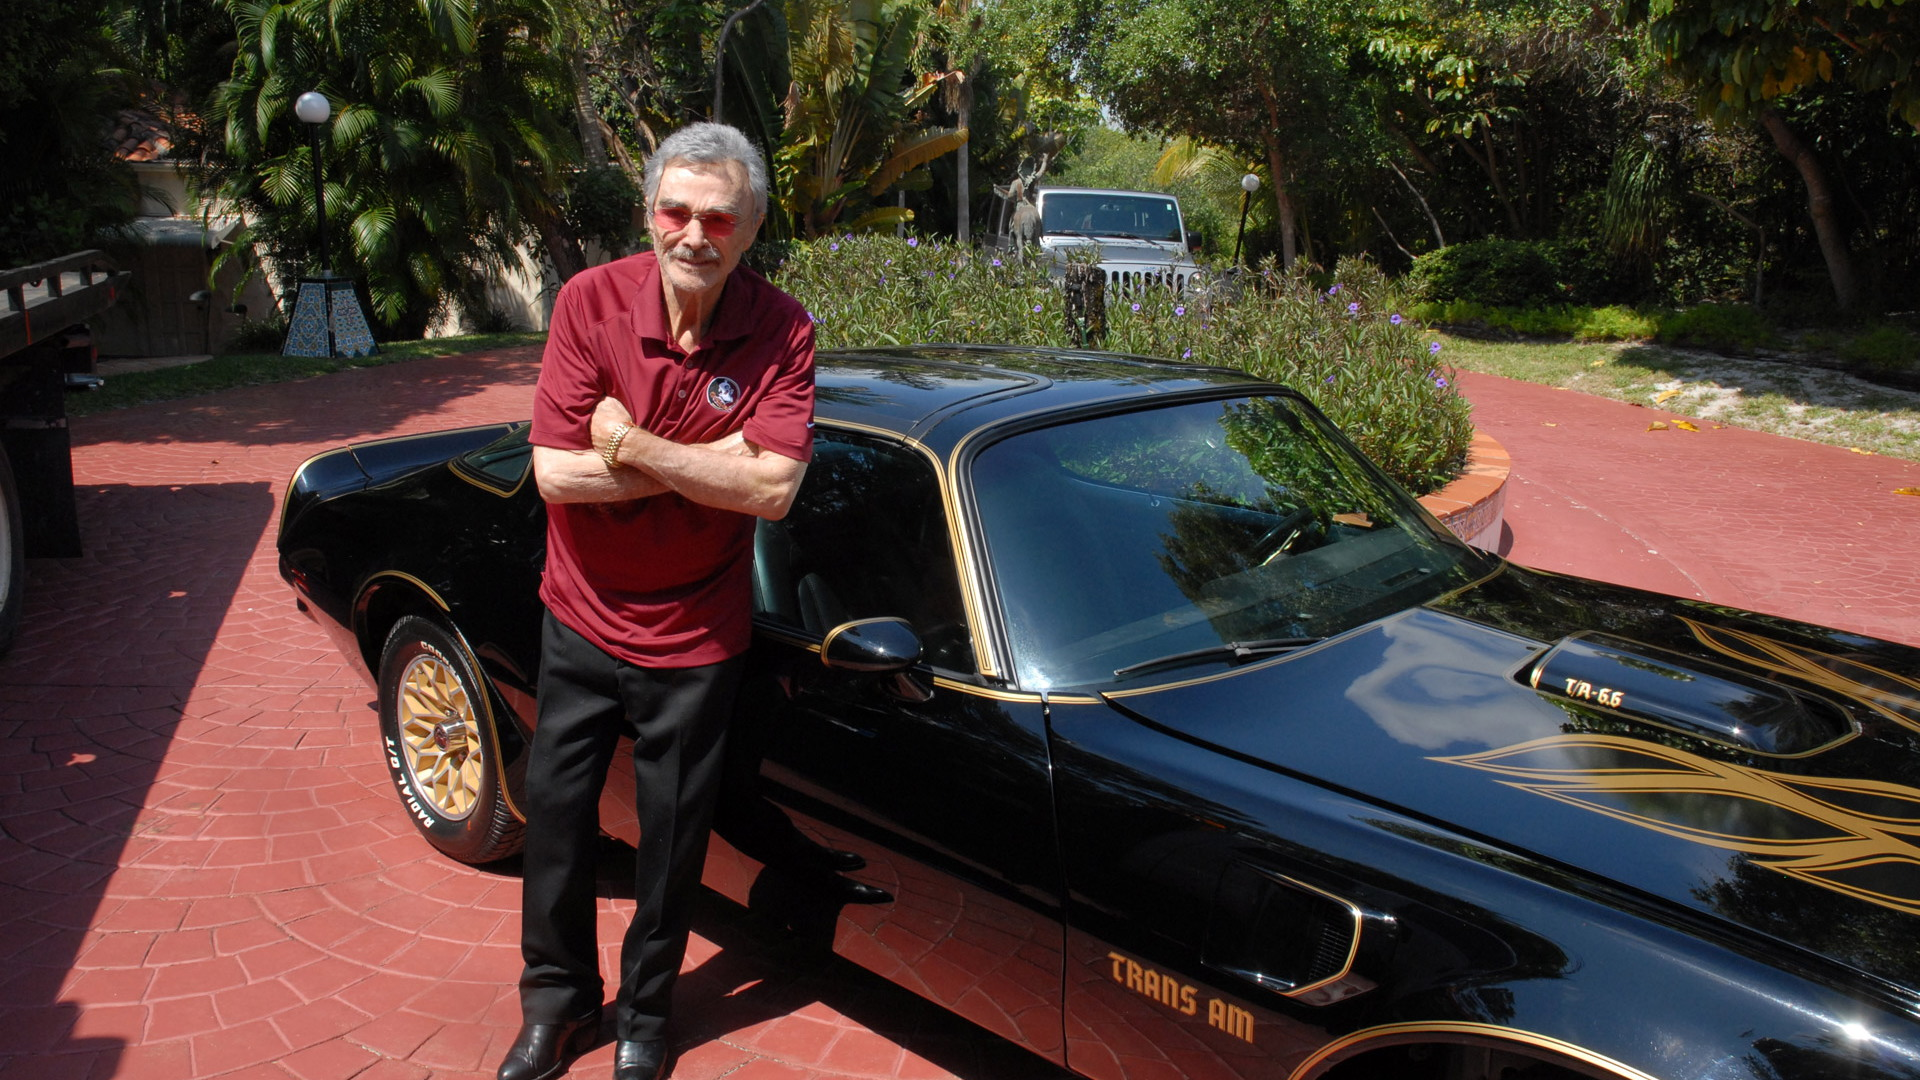 Burt Reynolds and his 'Bandit' 1977 Pontiac Trans Am